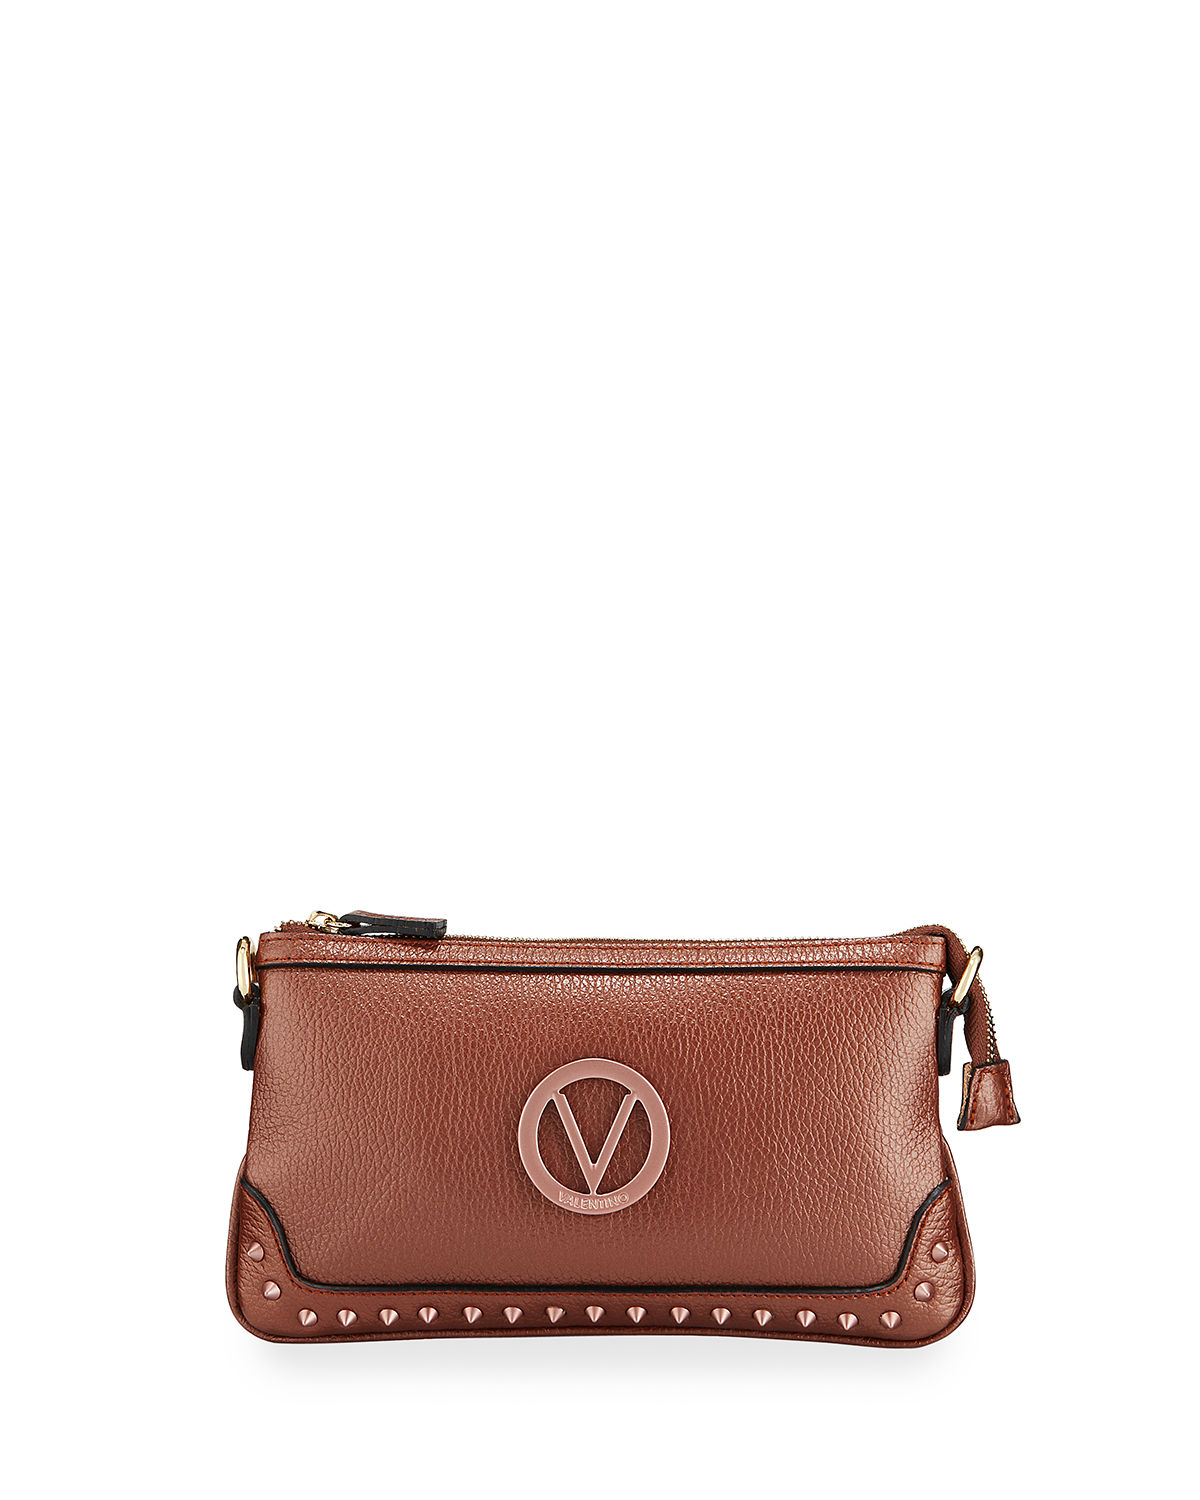 Valentino By Mario Valentino  ABIGAIL STUDDED LEATHER CROSSBODY BAG